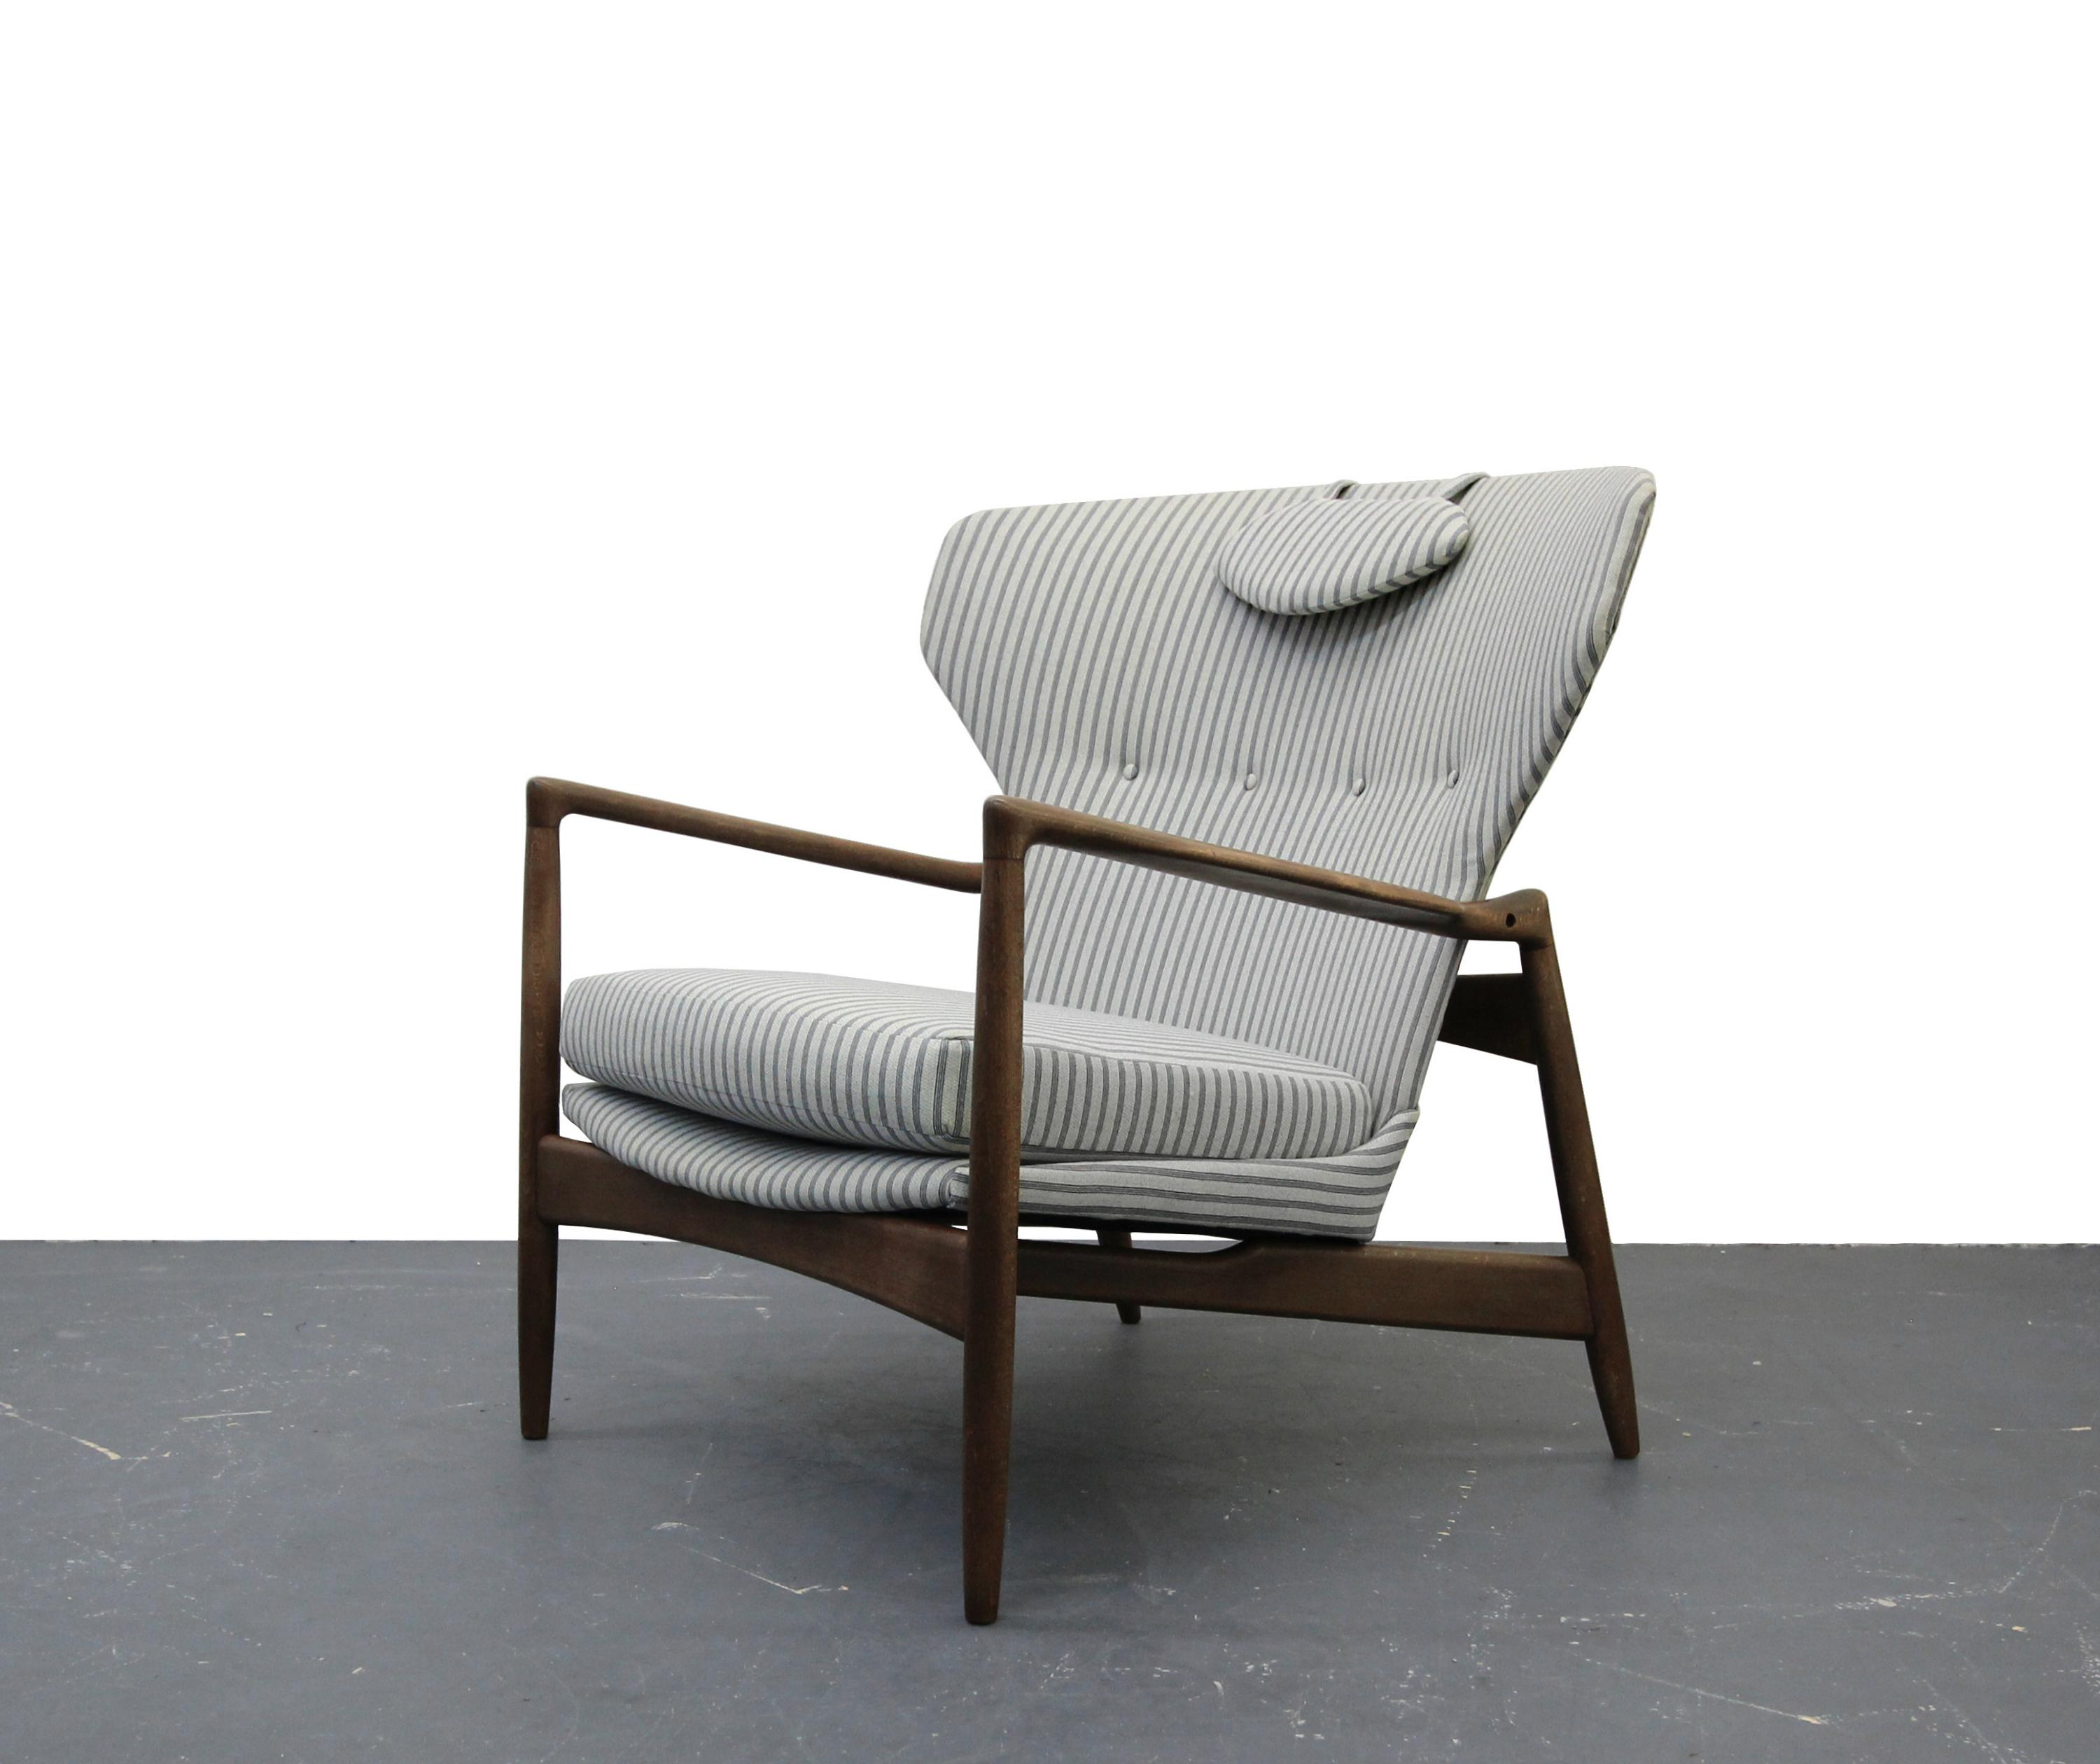 Merveilleux Mid Century Danish Wingback Lounge Chair By IB Kofod Larsen   Image 2 Of 9